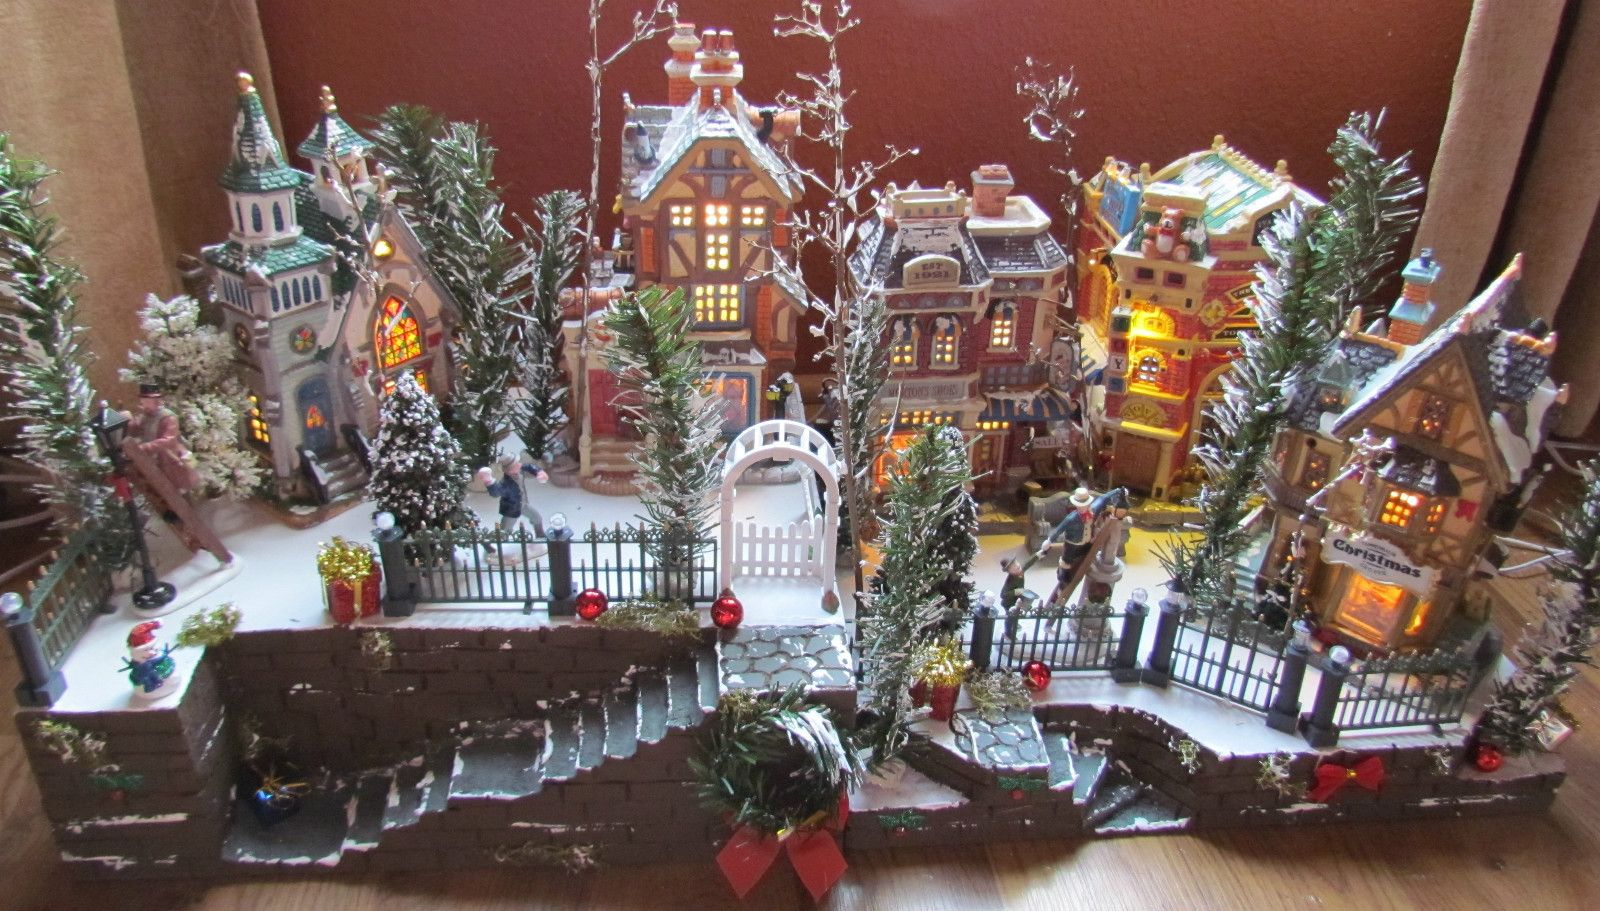 CHRISTMAS Village DISPLAY, Big Staircase! ce platform base ...